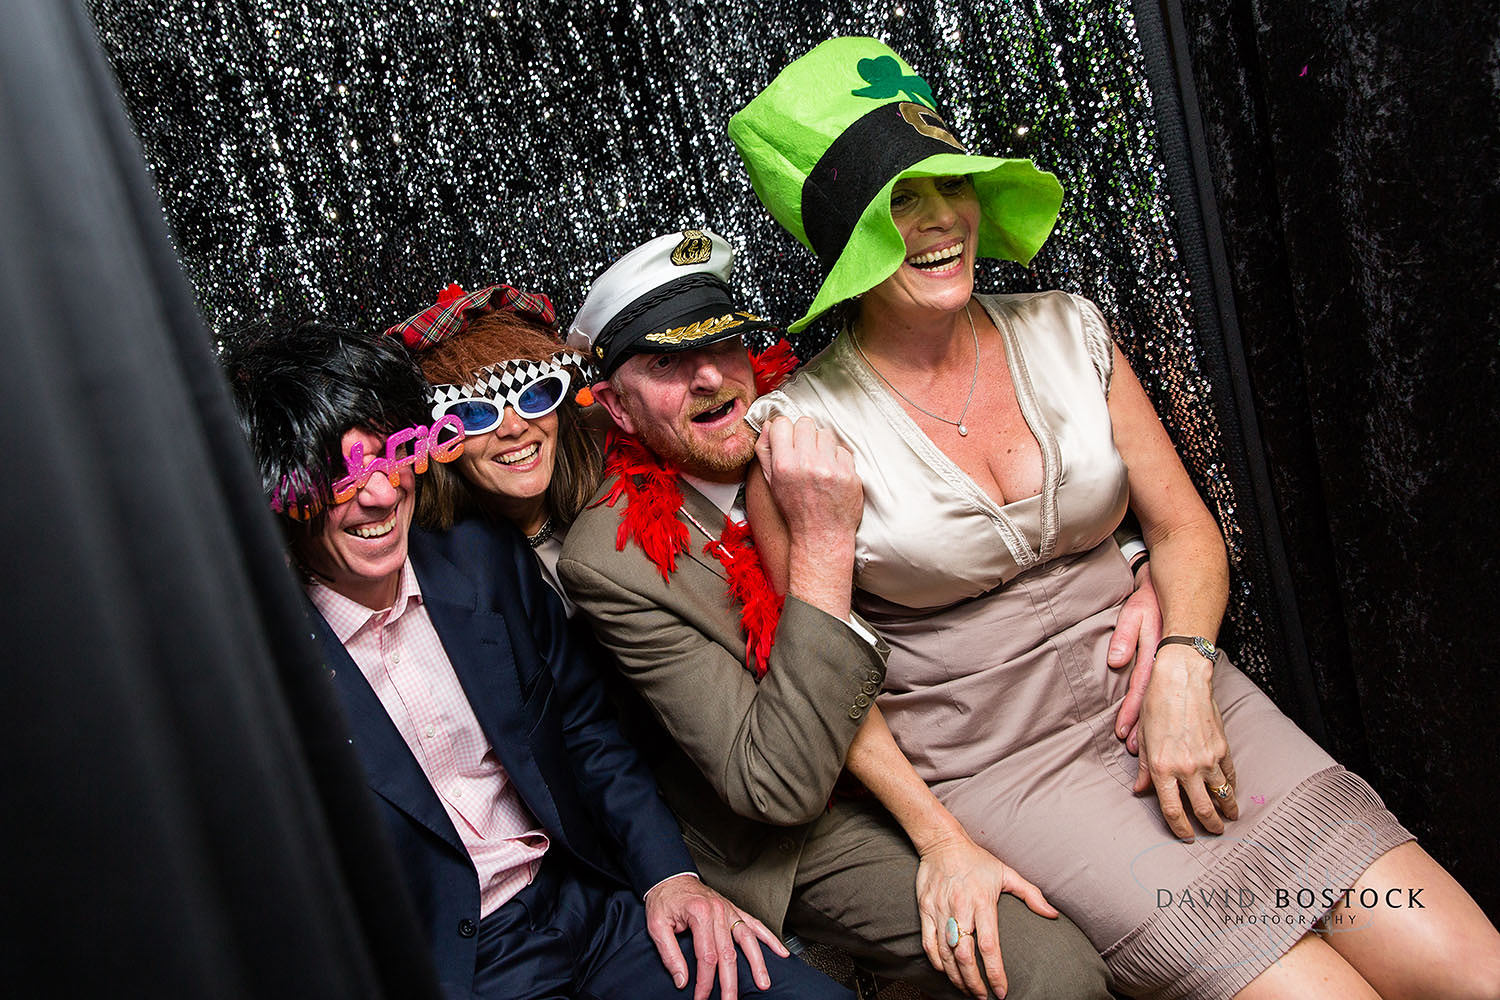 The Dairy Waddesdon wedding photo booth